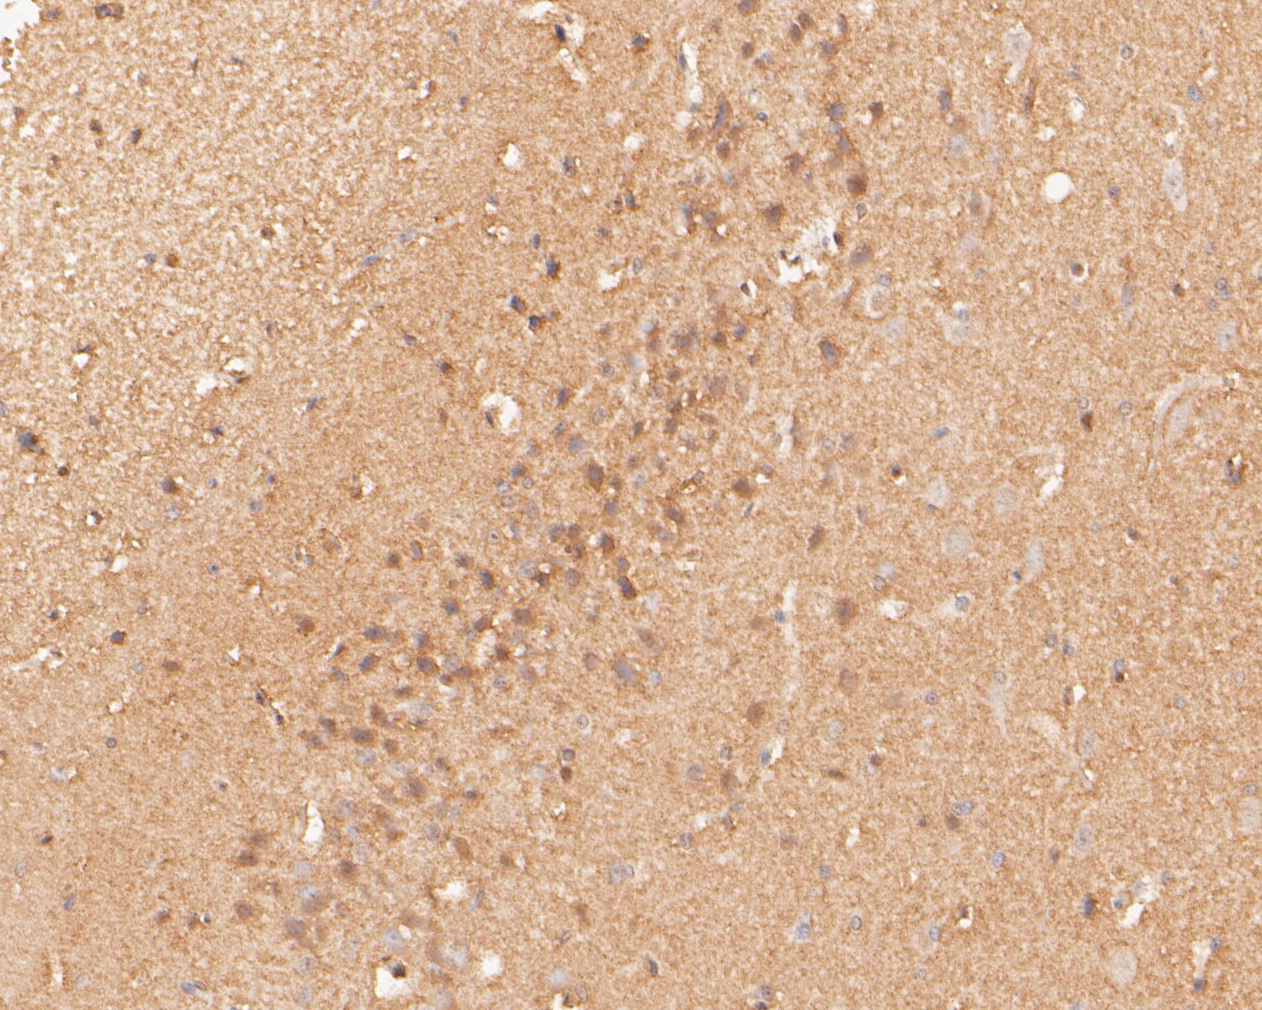 Immunohistochemical analysis of paraffin-embedded rat brain tissue using anti-P2X6 antibody. The section was pre-treated using heat mediated antigen retrieval with Tris-EDTA buffer (pH 8.0-8.4) for 20 minutes.The tissues were blocked in 5% BSA for 30 minutes at room temperature, washed with ddH2O and PBS, and then probed with the primary antibody (ER1901-49, 1/50) for 30 minutes at room temperature. The detection was performed using an HRP conjugated compact polymer system. DAB was used as the chromogen. Tissues were counterstained with hematoxylin and mounted with DPX.